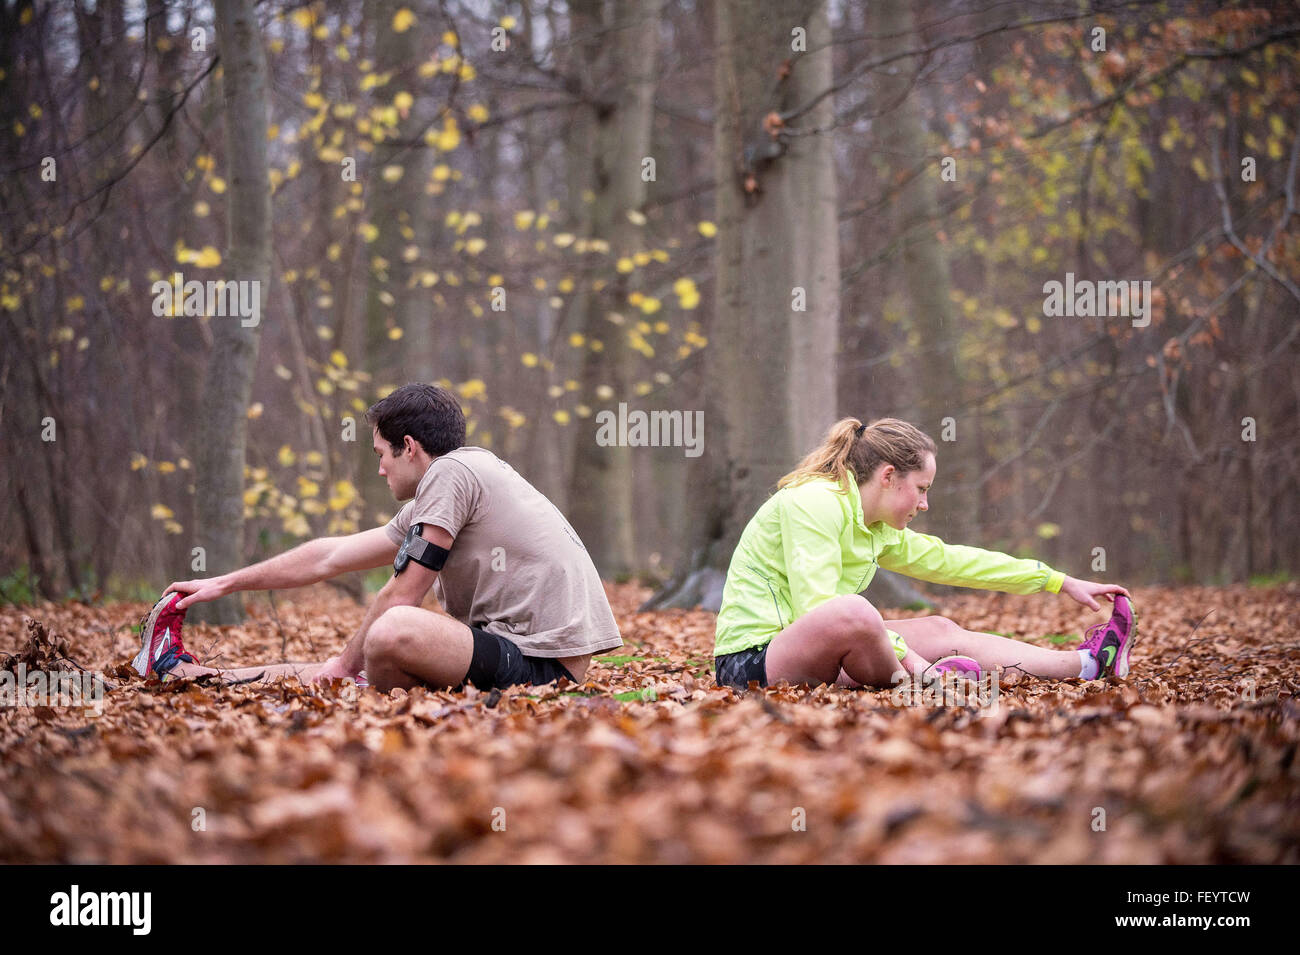 At the end of the penultimate day of the event, two runners stretch off near Brussels in Belgium. A group of Soldiers - Stock Image